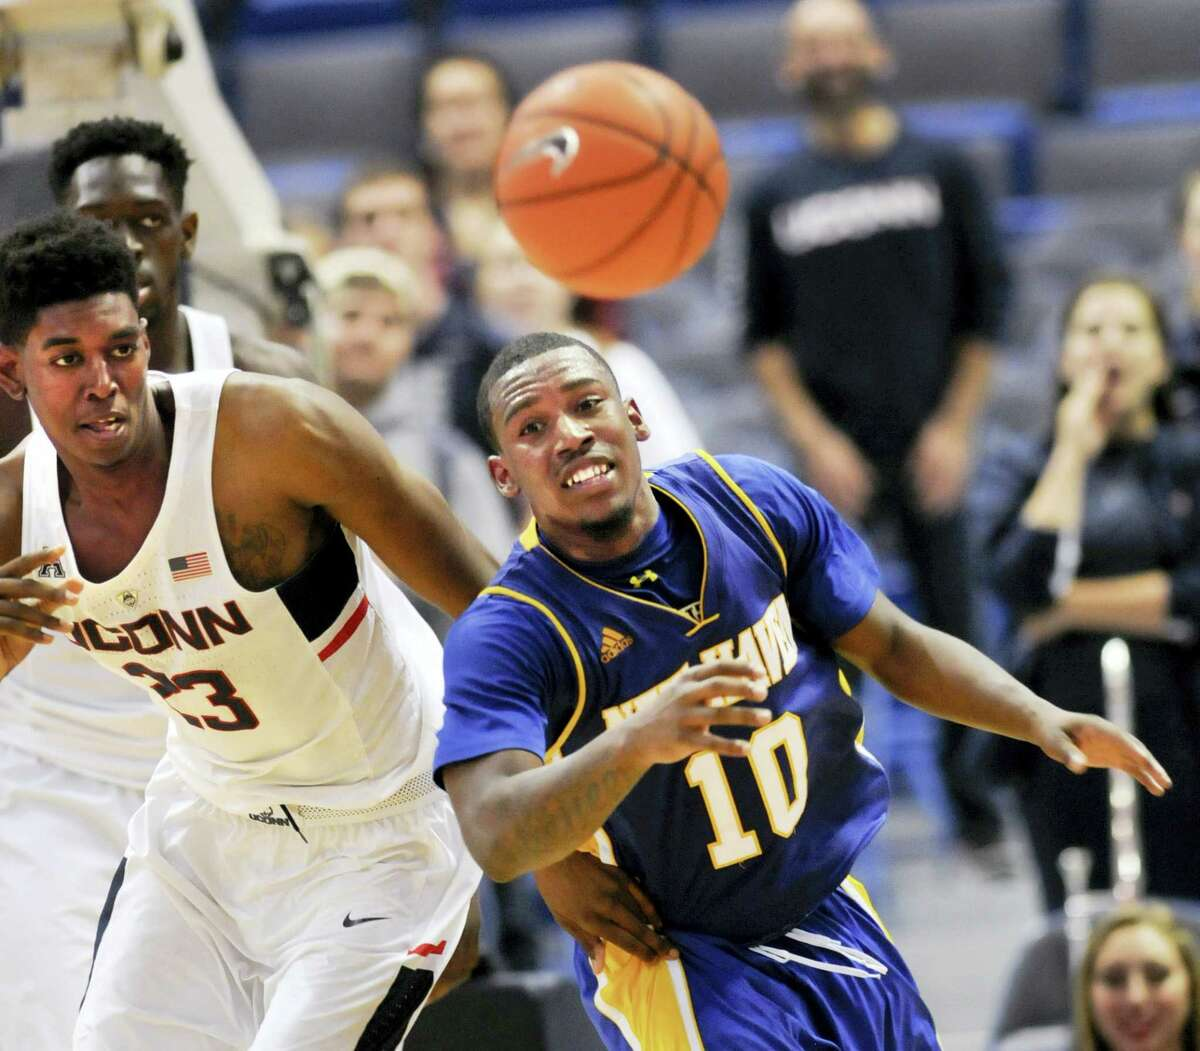 UConn's Juwan Durham (23) chases a rebound with New Haven's Danny Upchurch during the second half on Sunday.